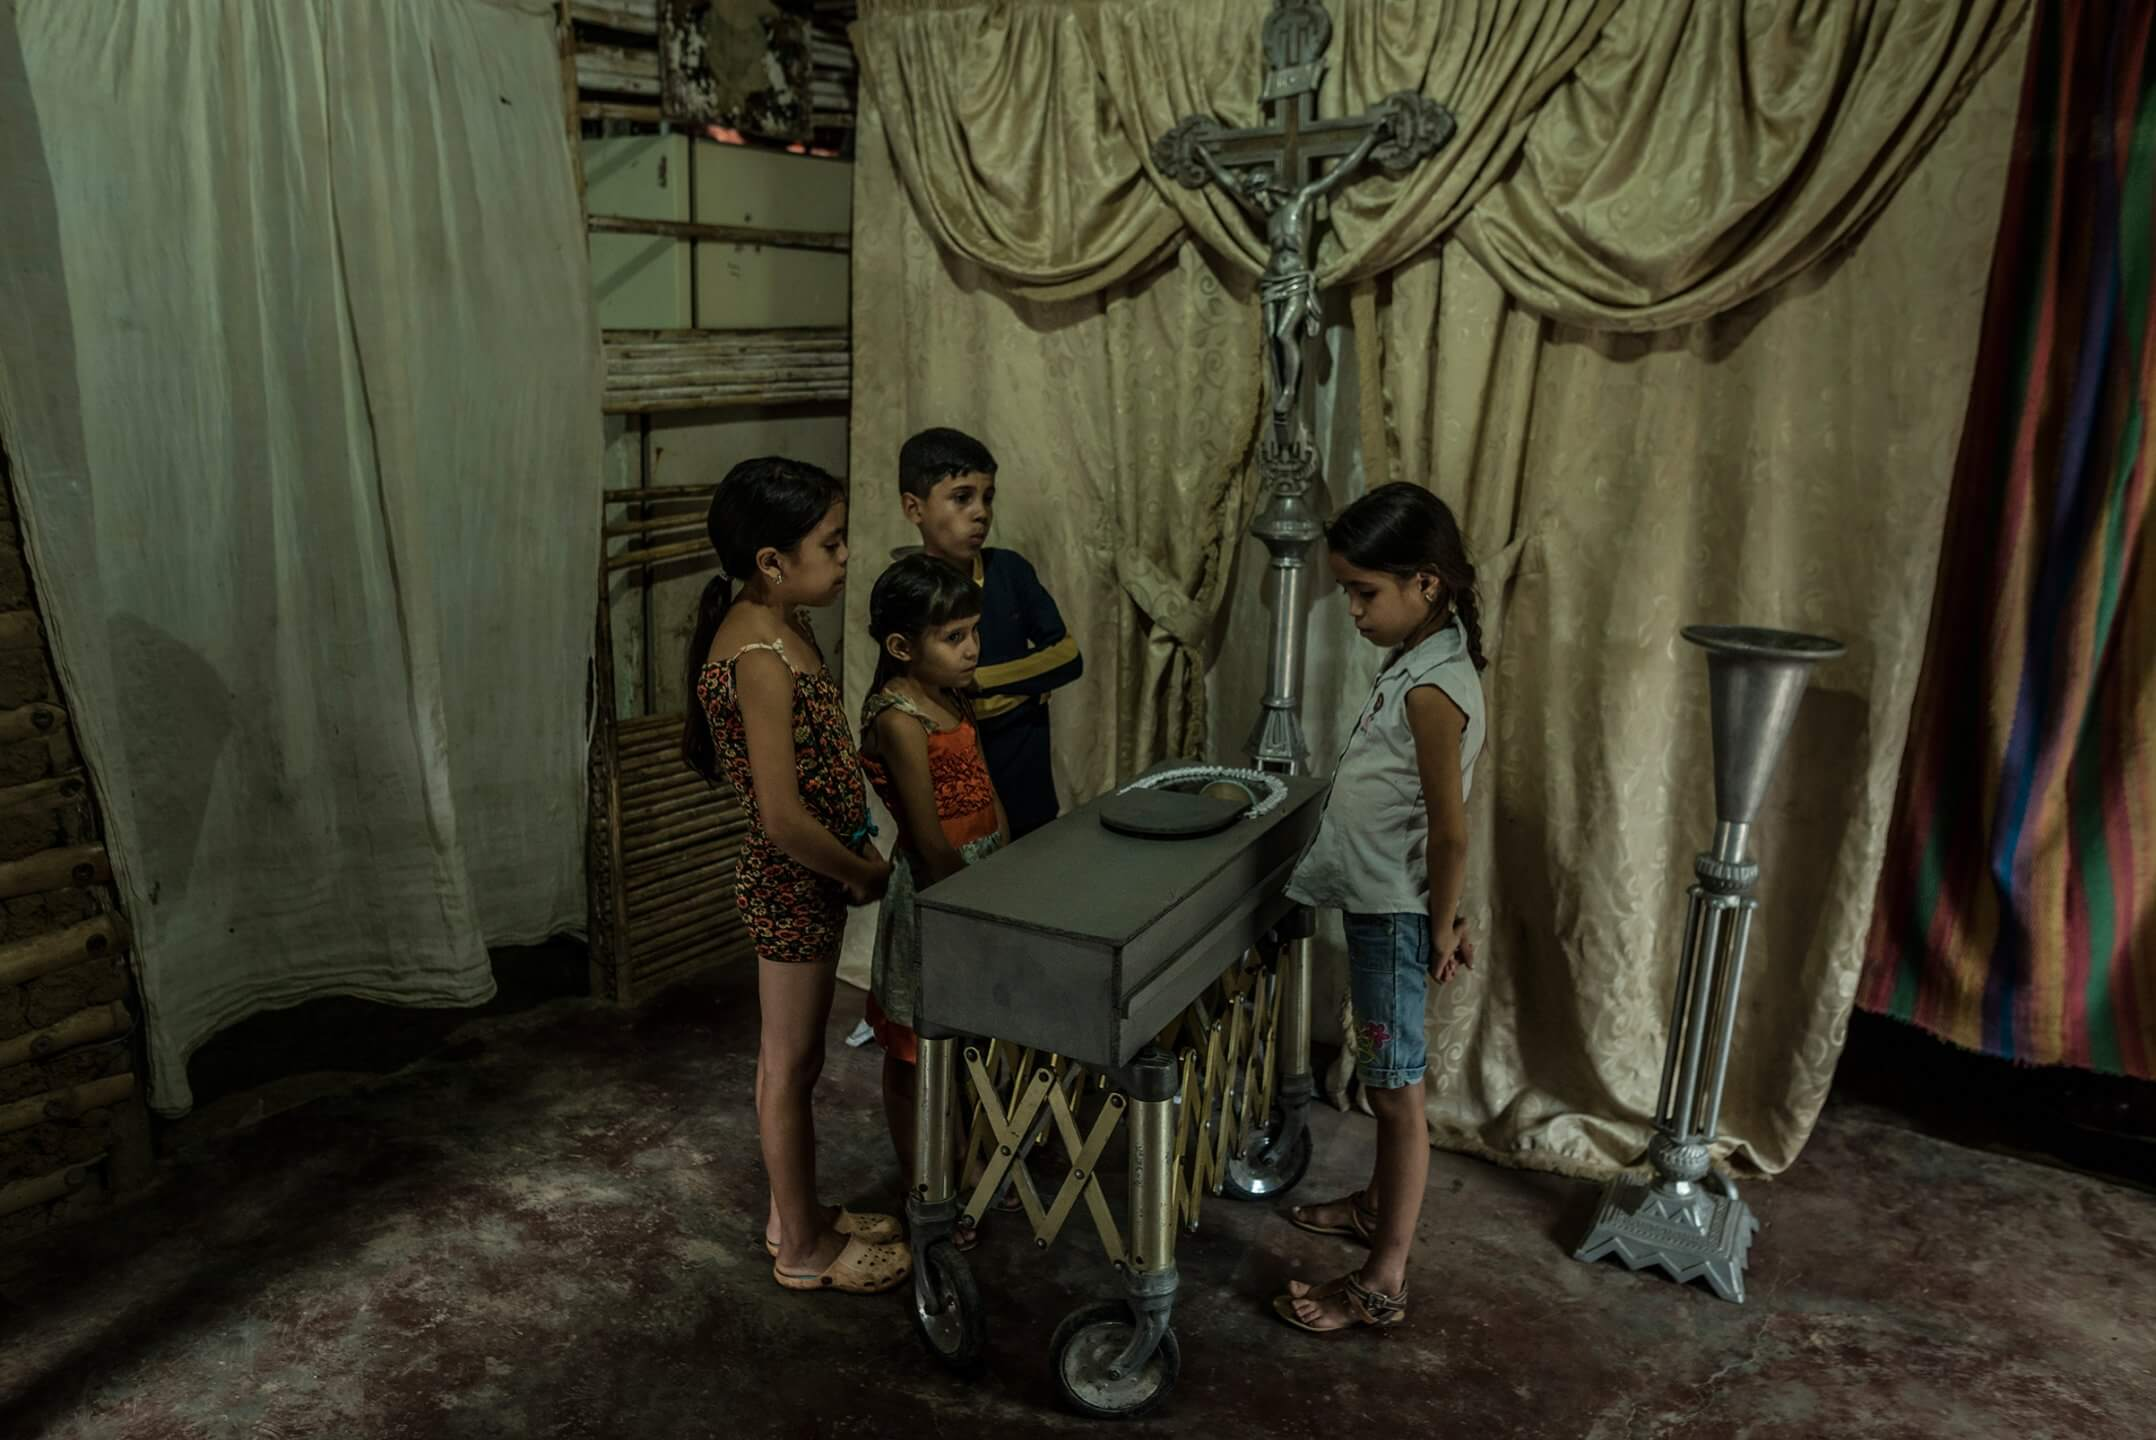 time meridith kohut venezuela children top 100 photos 2017 TOP 100 PHOTOS From the Editors of TIME